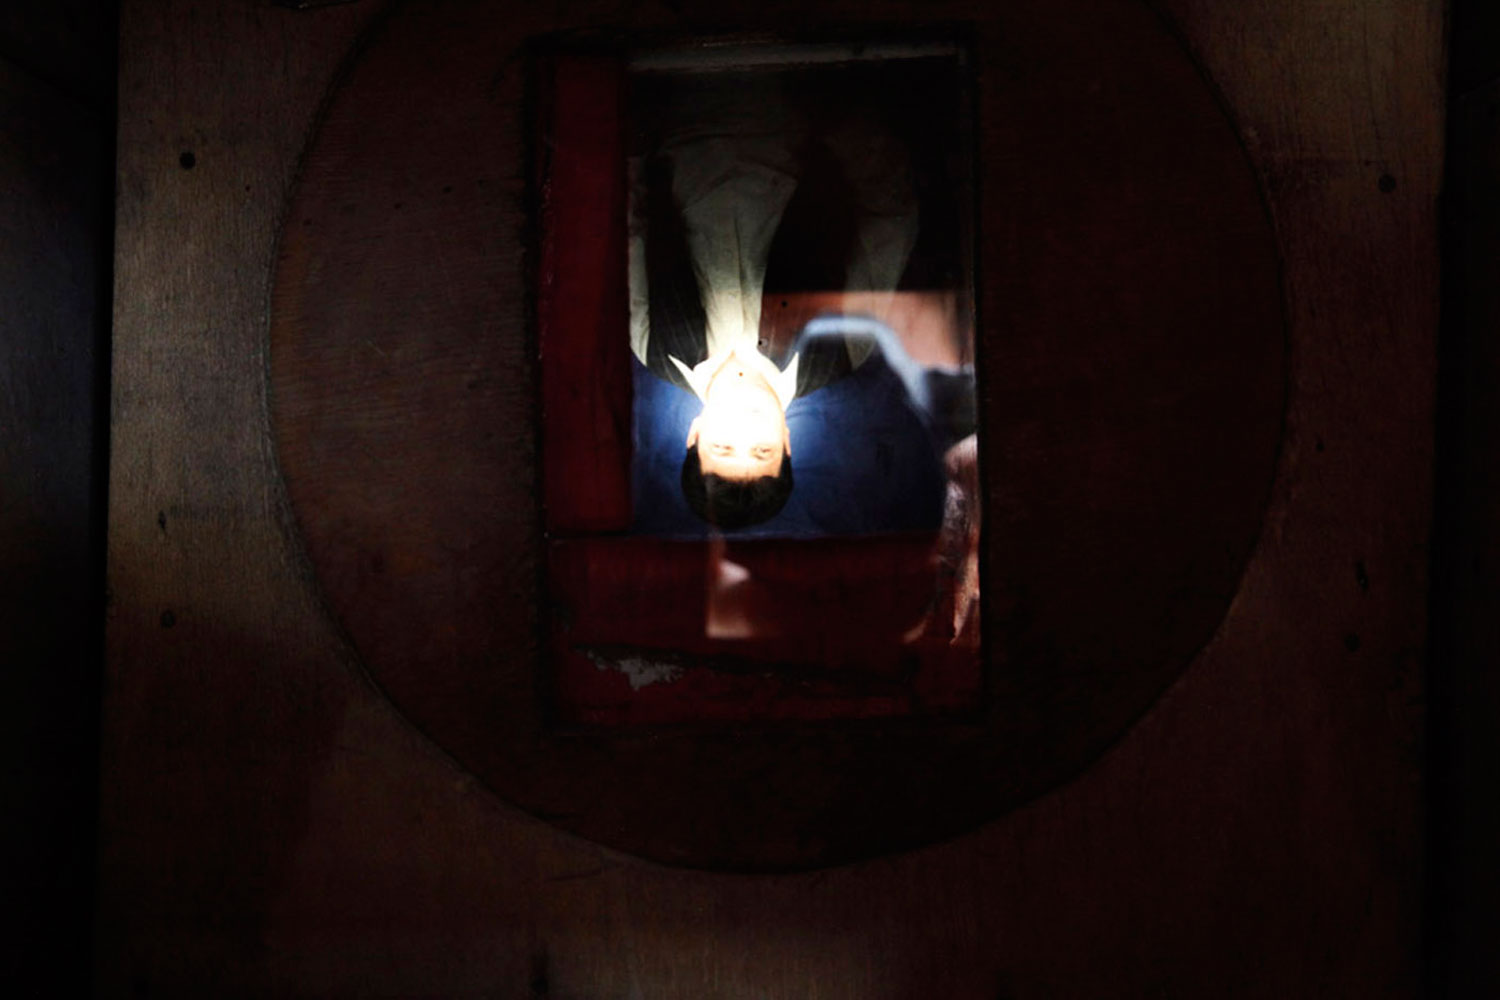 An image of a customer projected onto the focusing plate of Qalam Nabi's camera.